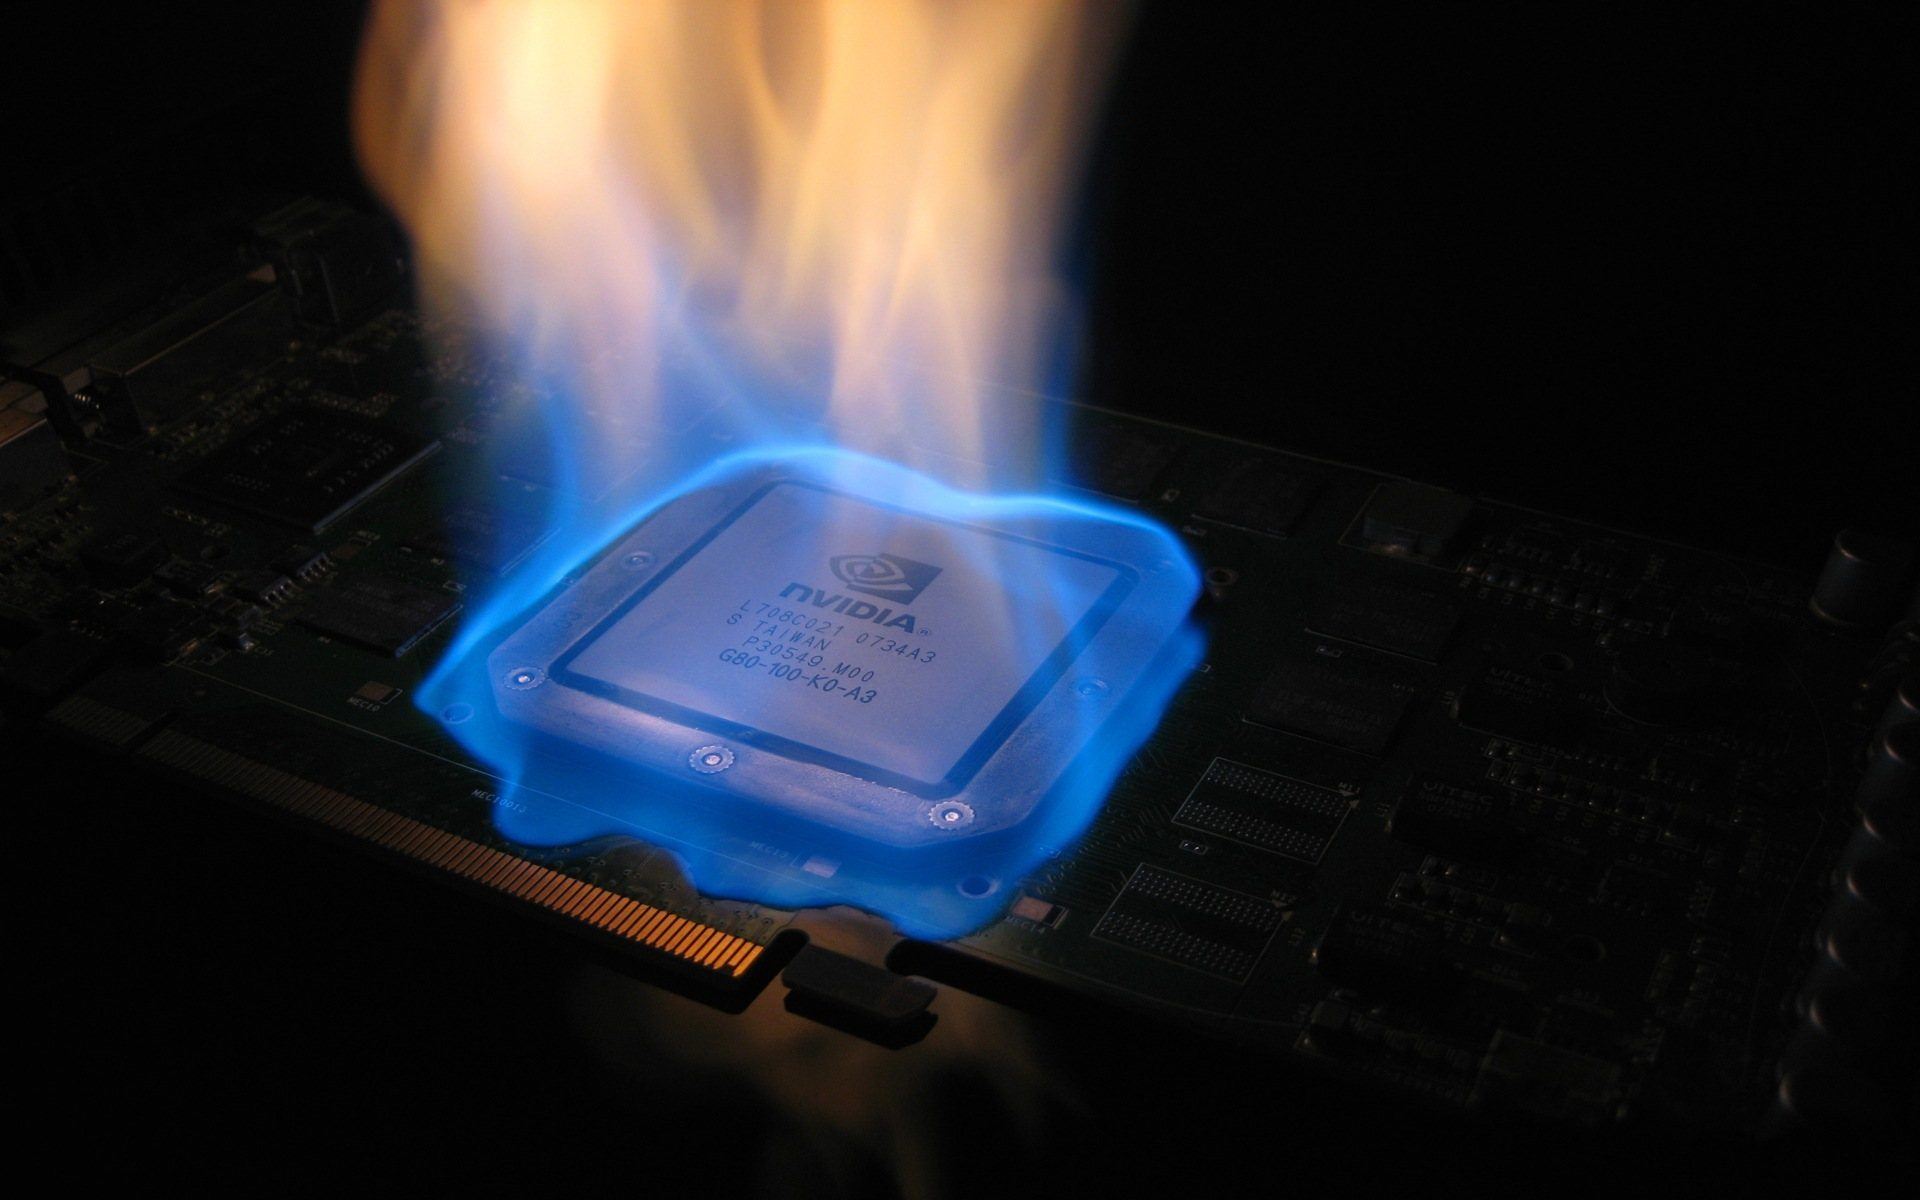 nvidia-chip-is-on-fire-1920x12001